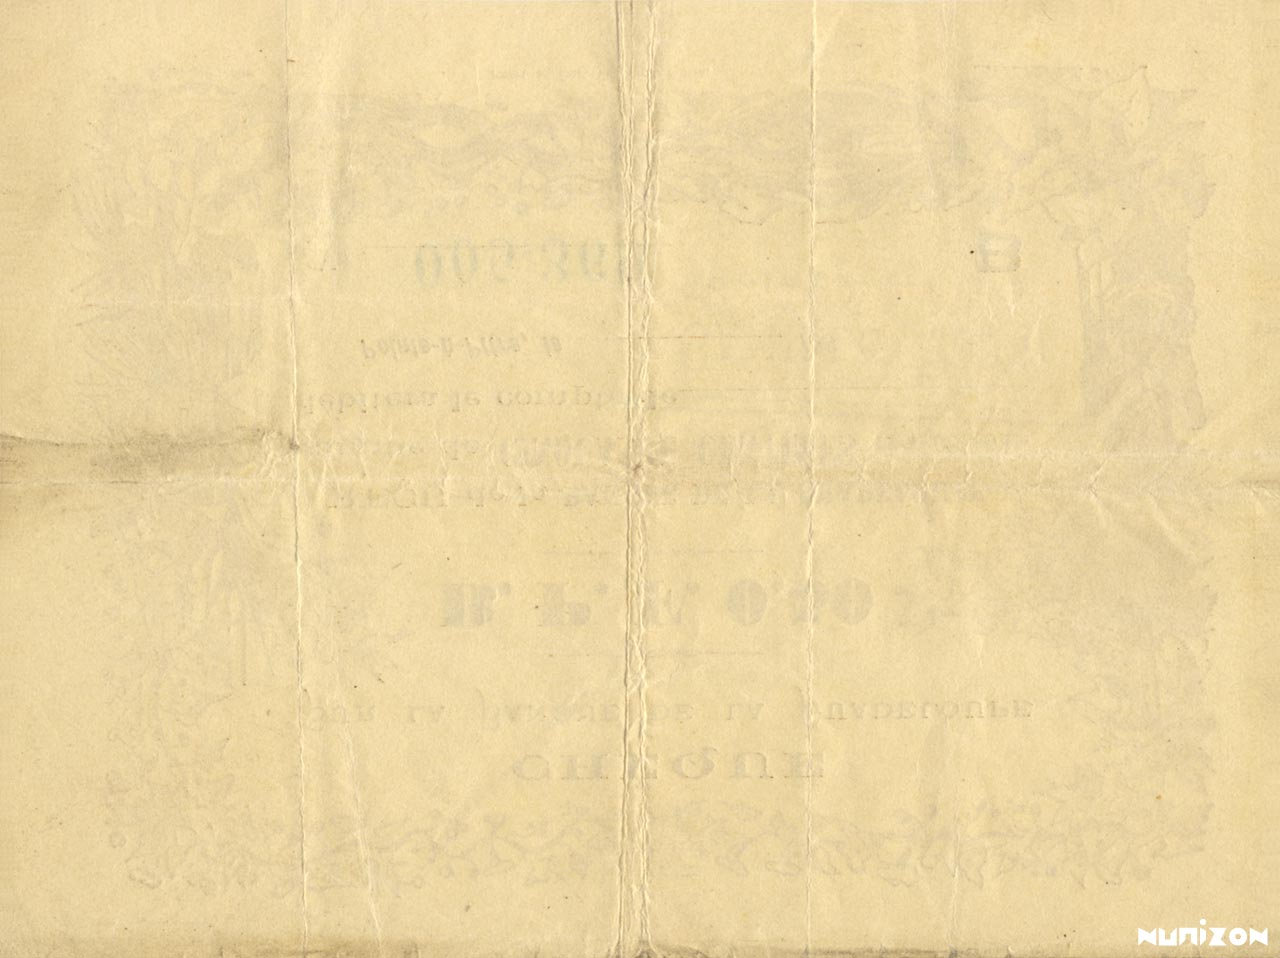 VERSO 50 centimes Type 1890